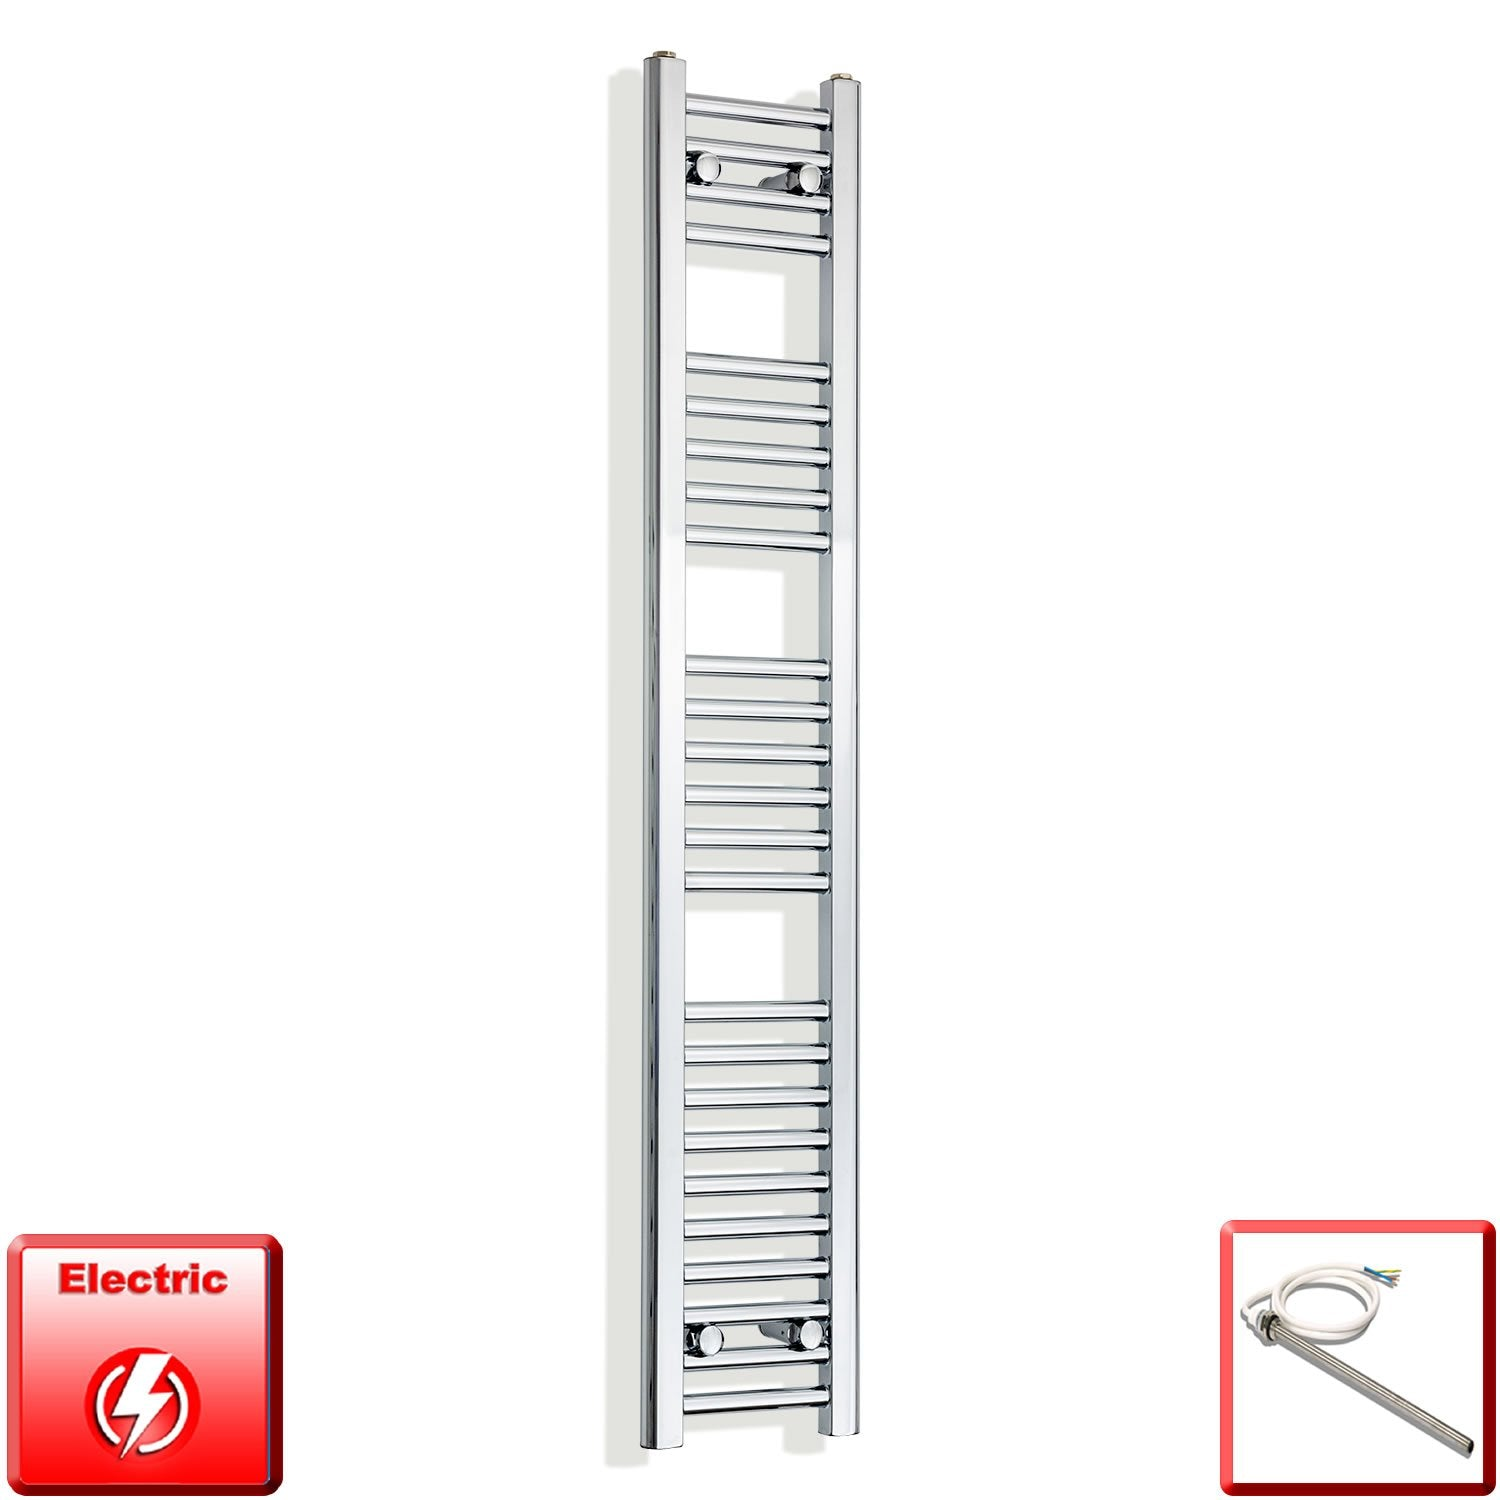 250mm Wide 1400mm High Flat Chrome Pre-Filled Electric Heated Towel Rail Radiator HTR,Single Heat Element